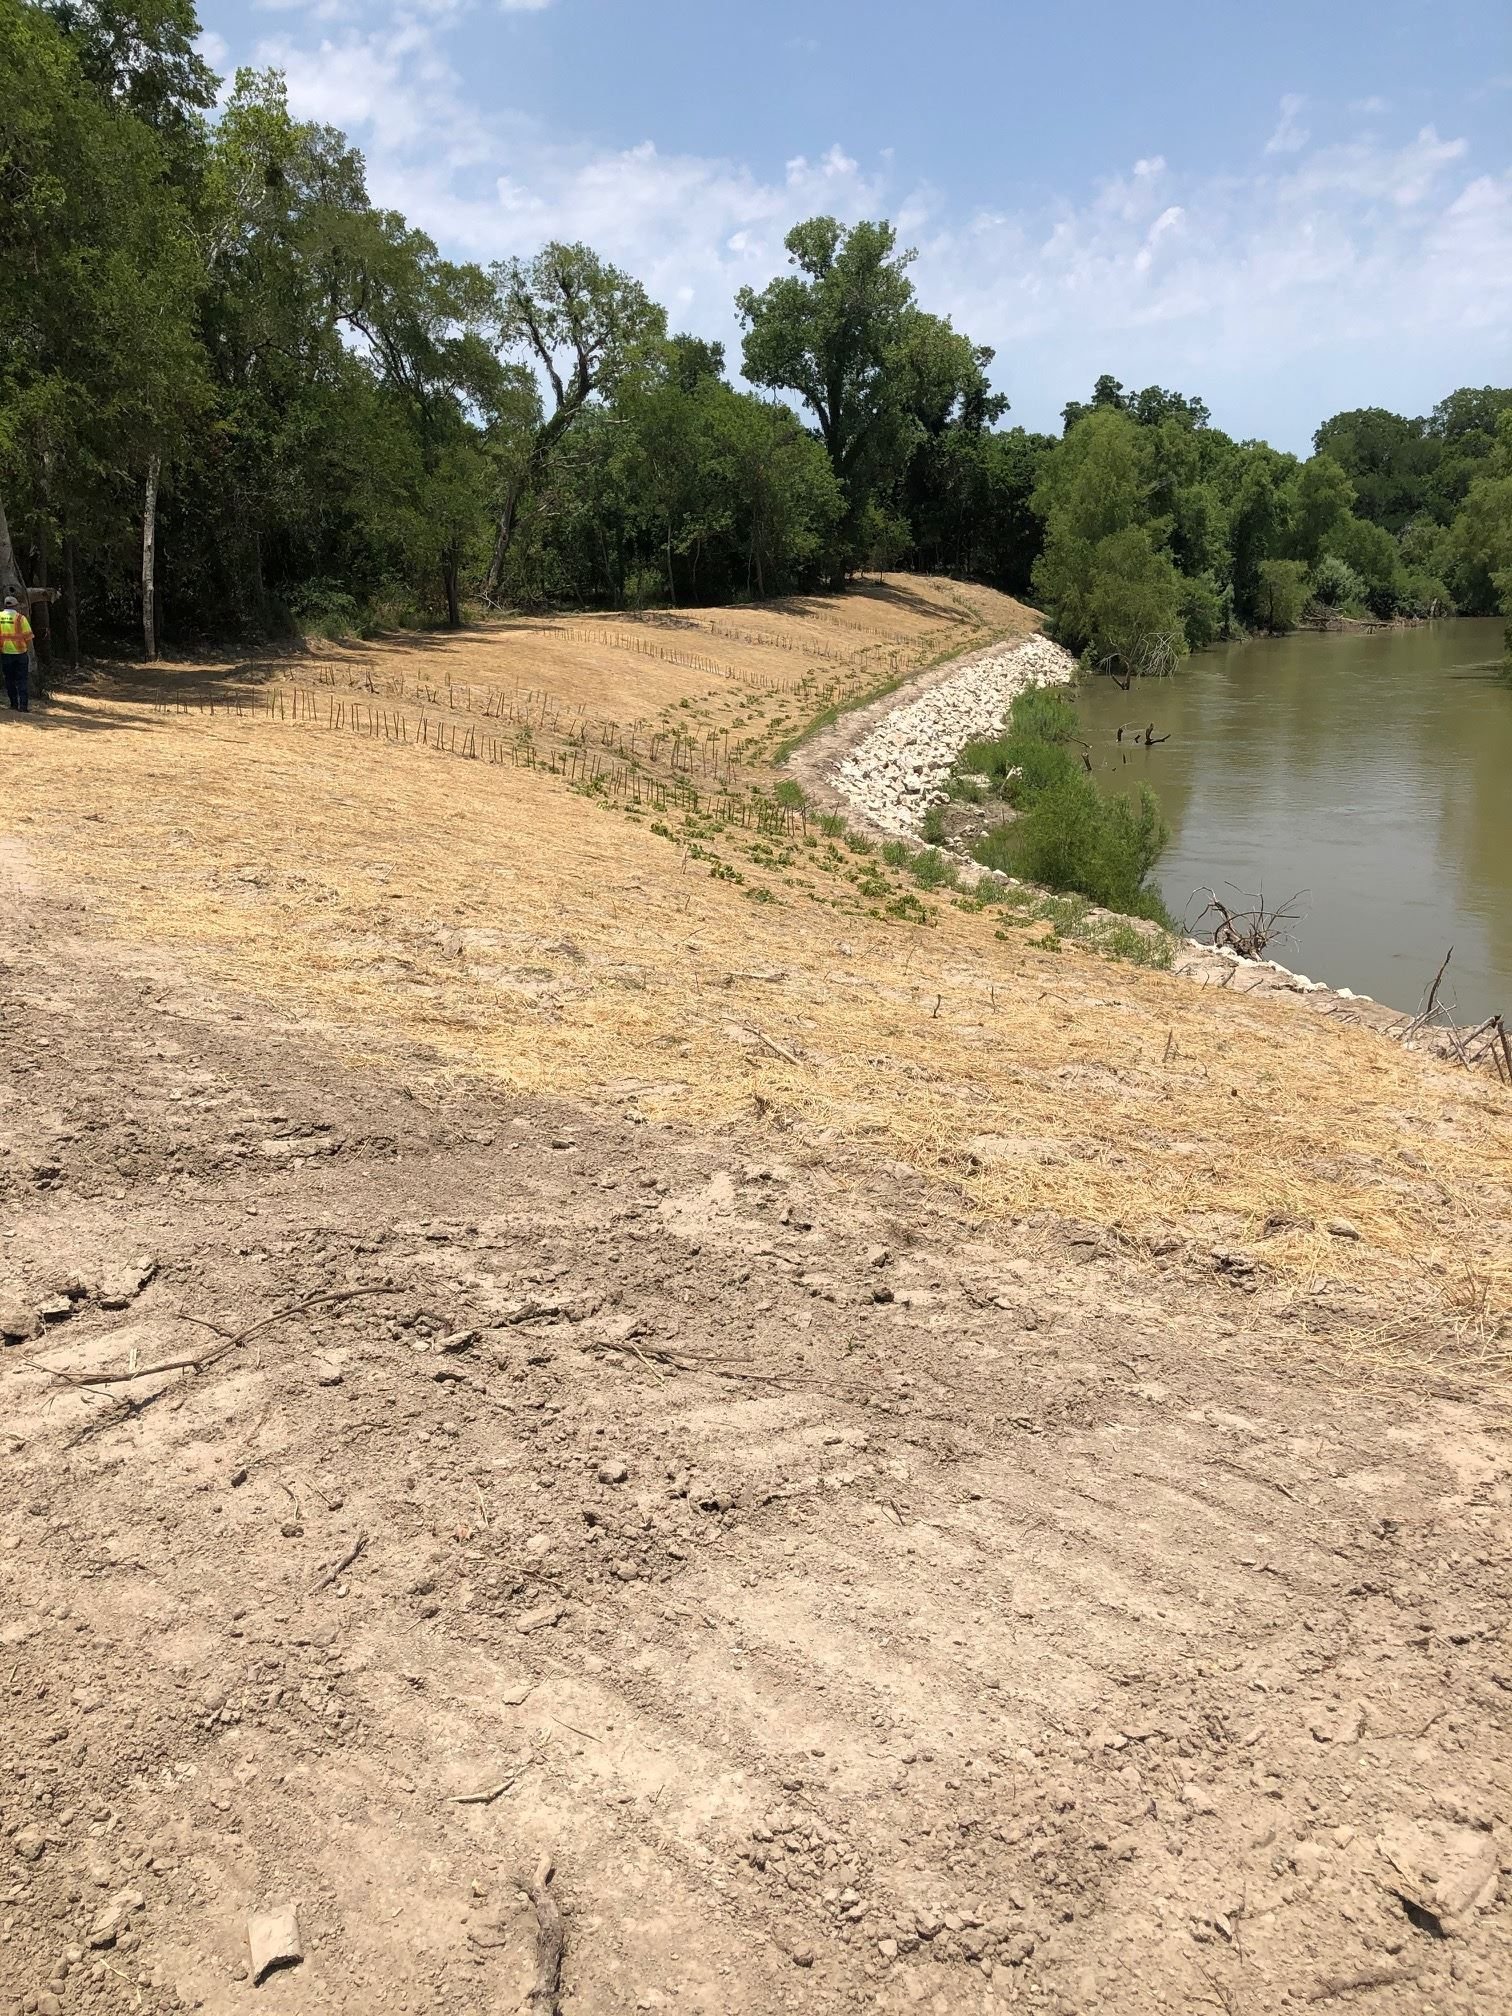 Guadalupe River bank shored up using stones